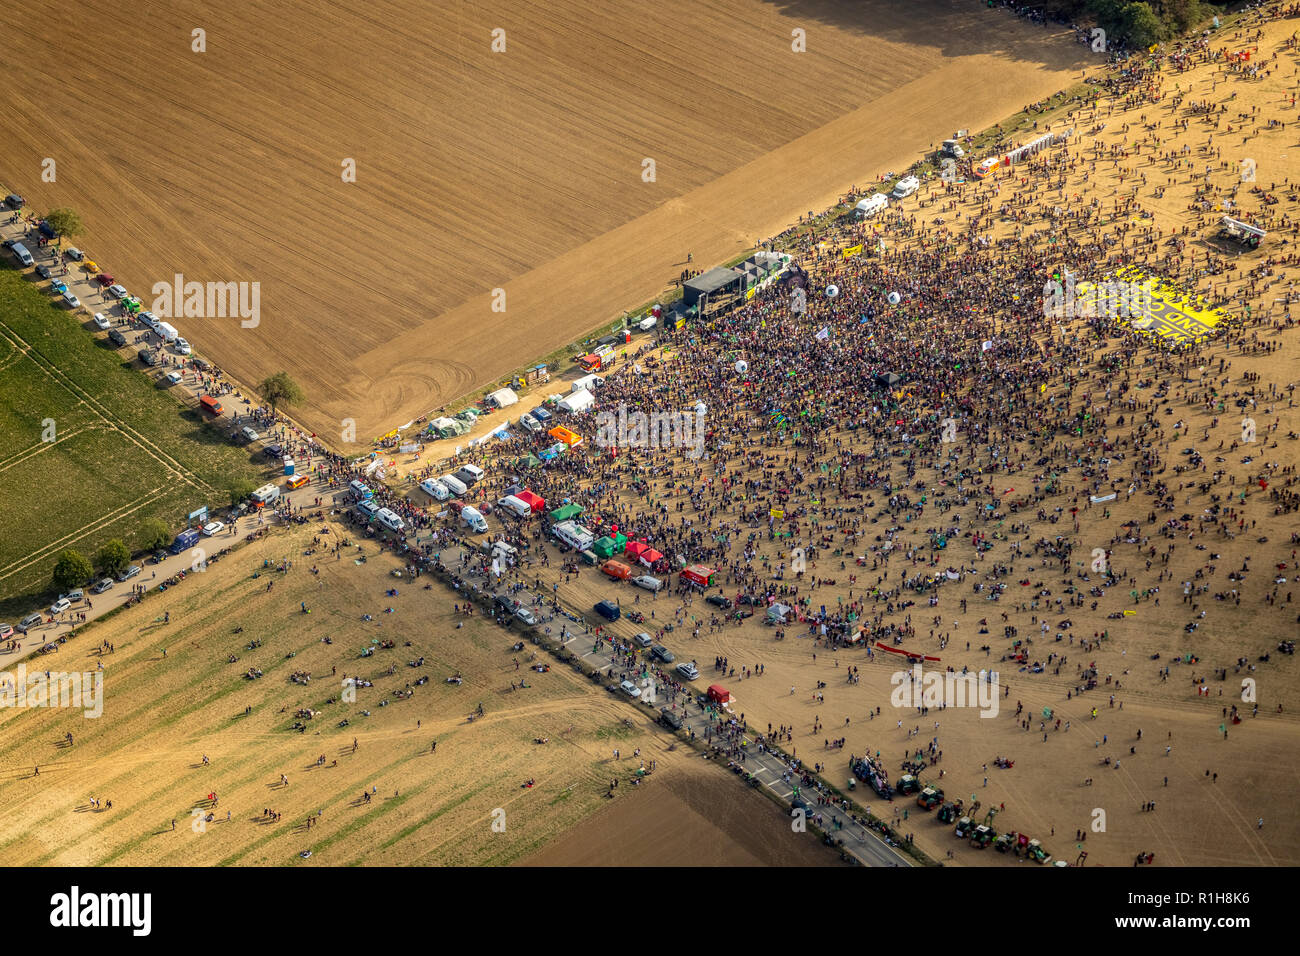 Many people on large-scale demonstration against the clearing of the Hambach forest, lignite area, Hambach, Hambacher Forst - Stock Image